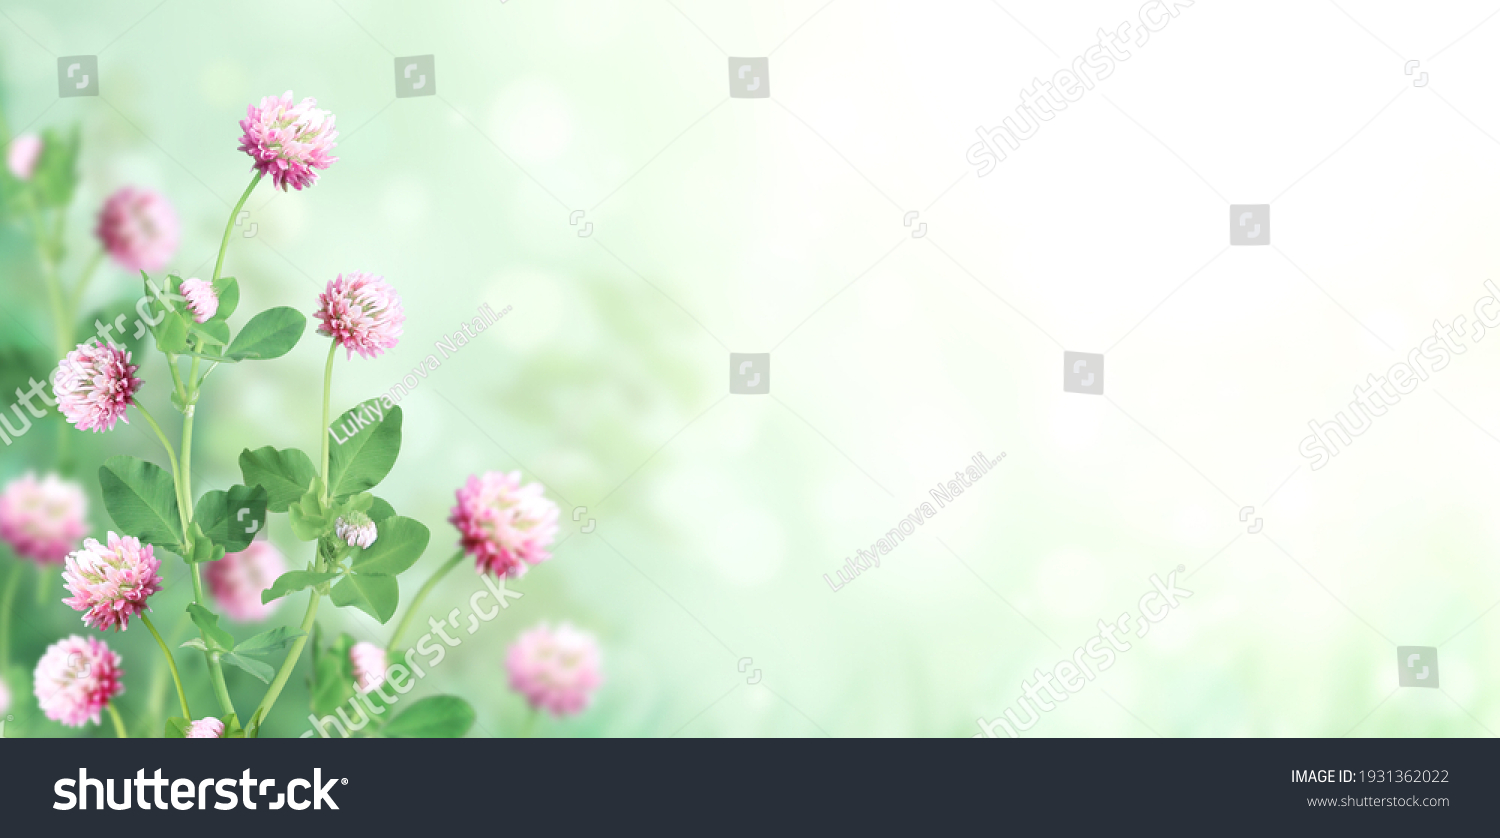 Wild red clover (Trifolium pratense) on sunny beautiful nature spring background. Summer scene with clover flower of pink color. Horizontal spring banner with flowers. Copy space for text   #1931362022